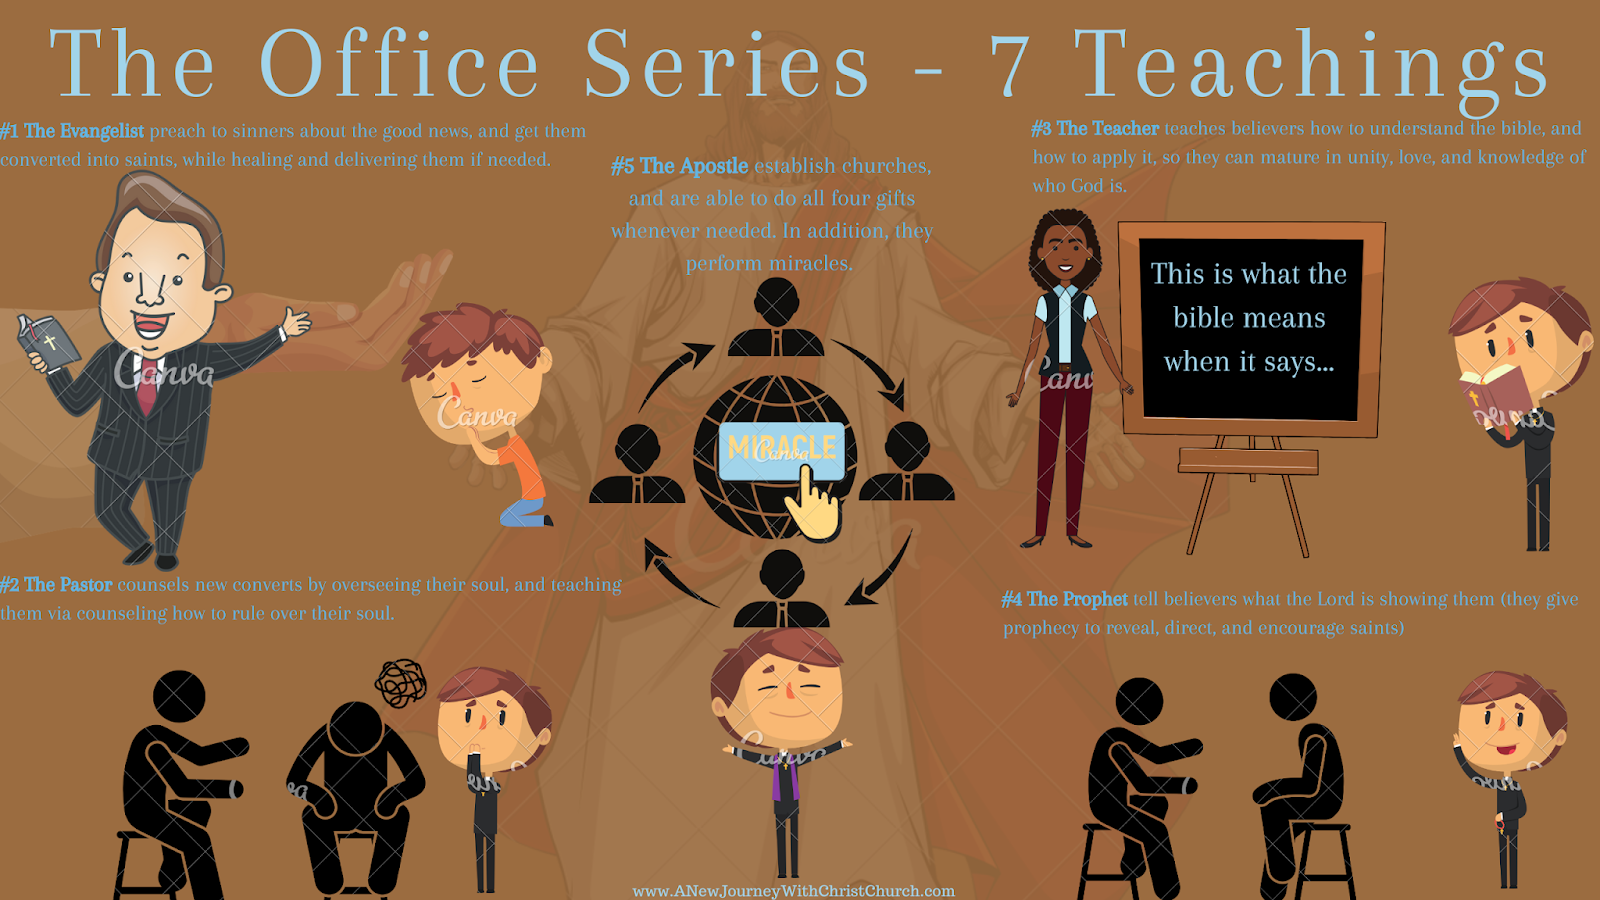 The Office Series 7 of 7 - Shepherds (Pastors)